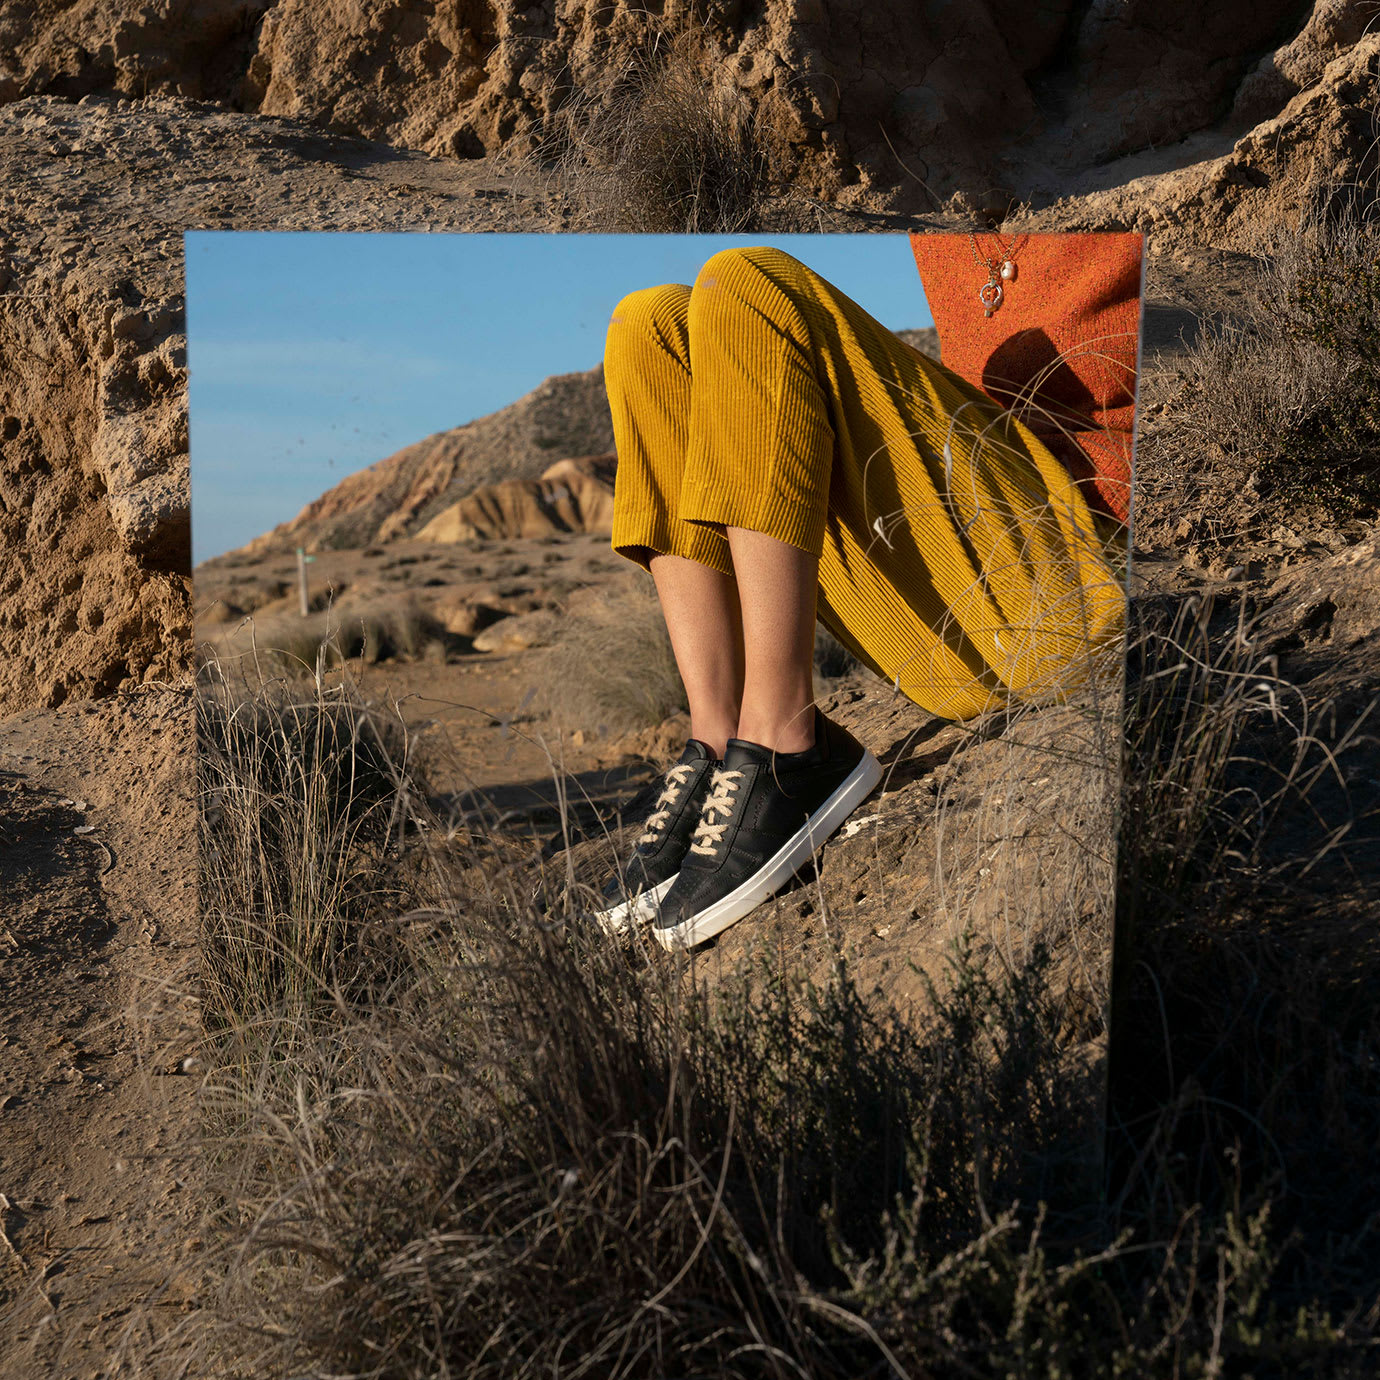 A man and shoes reflected in a mirror in the desert.